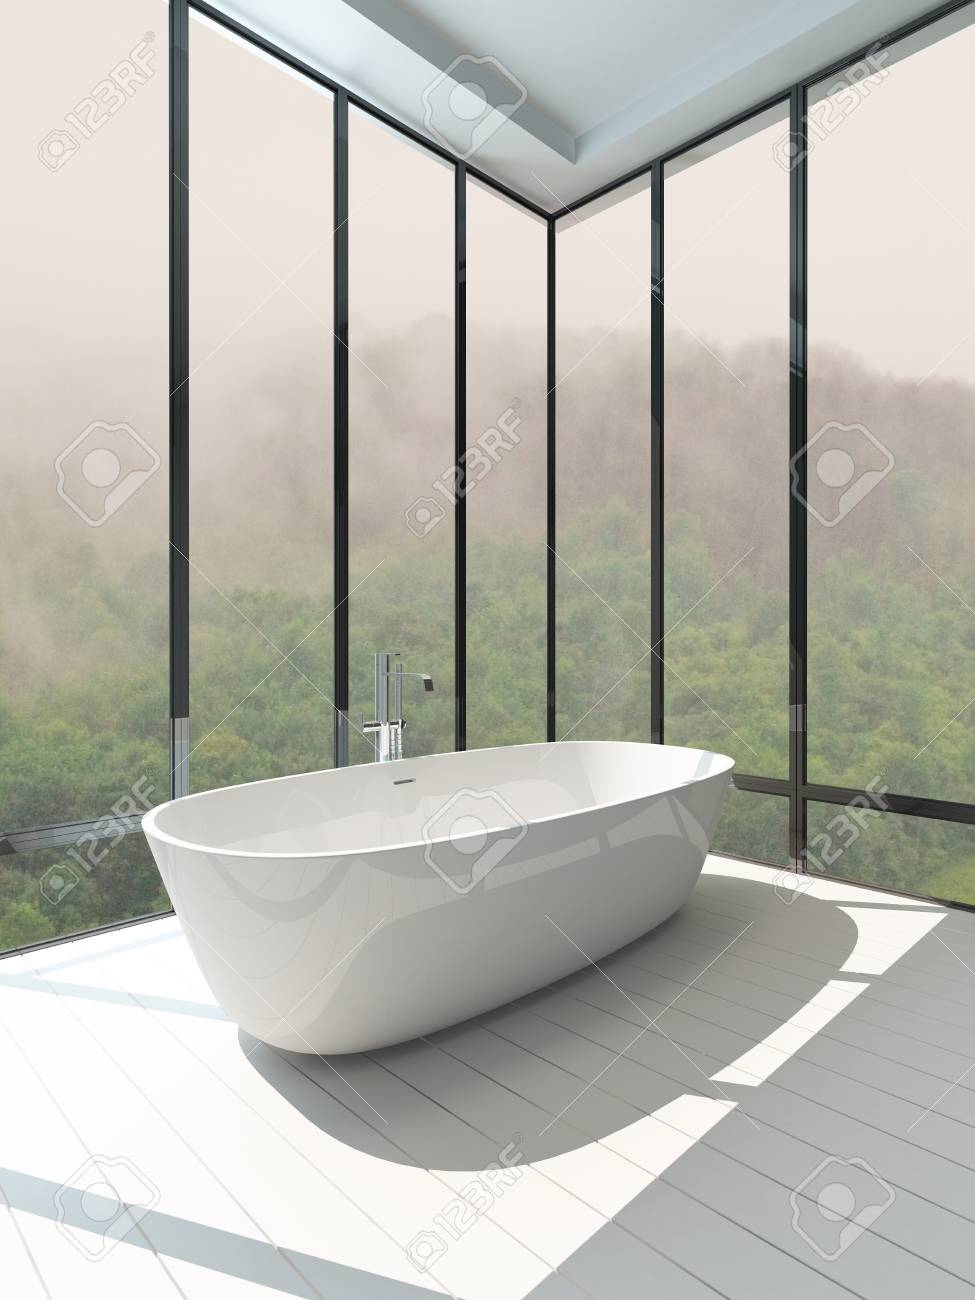 Picture Of Empty Room Interior With Standalone Bathtub Stock Photo    27990634